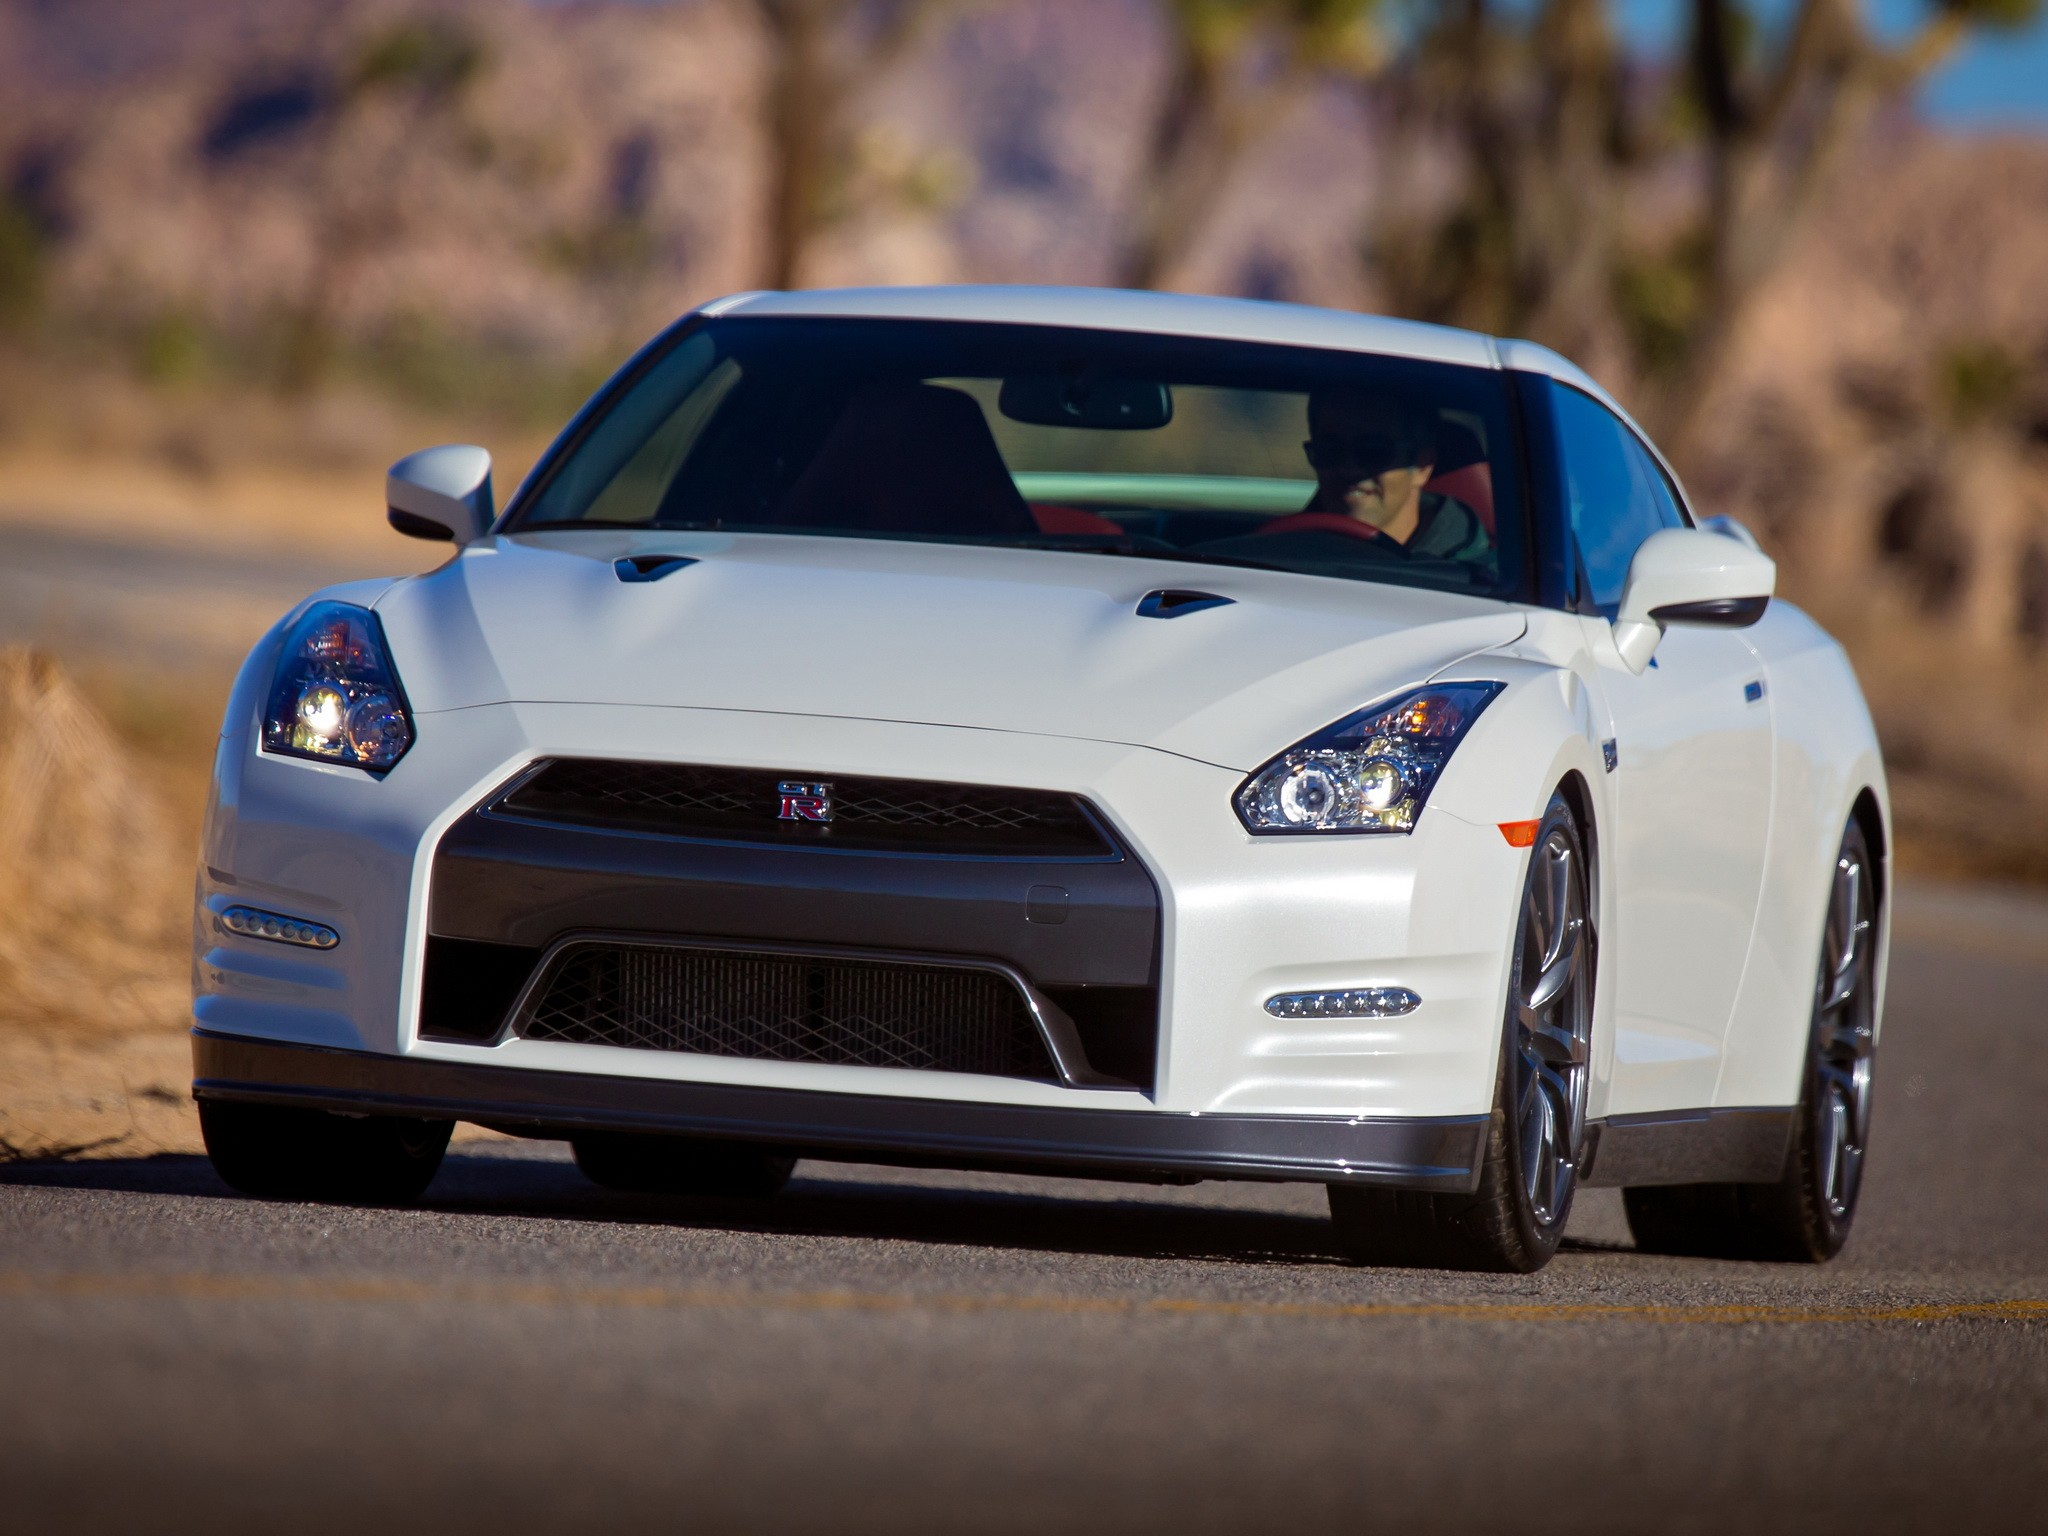 nissan gt r r35 facelift specs photos 2011 2012 2013 2014 2015 2016 autoevolution. Black Bedroom Furniture Sets. Home Design Ideas